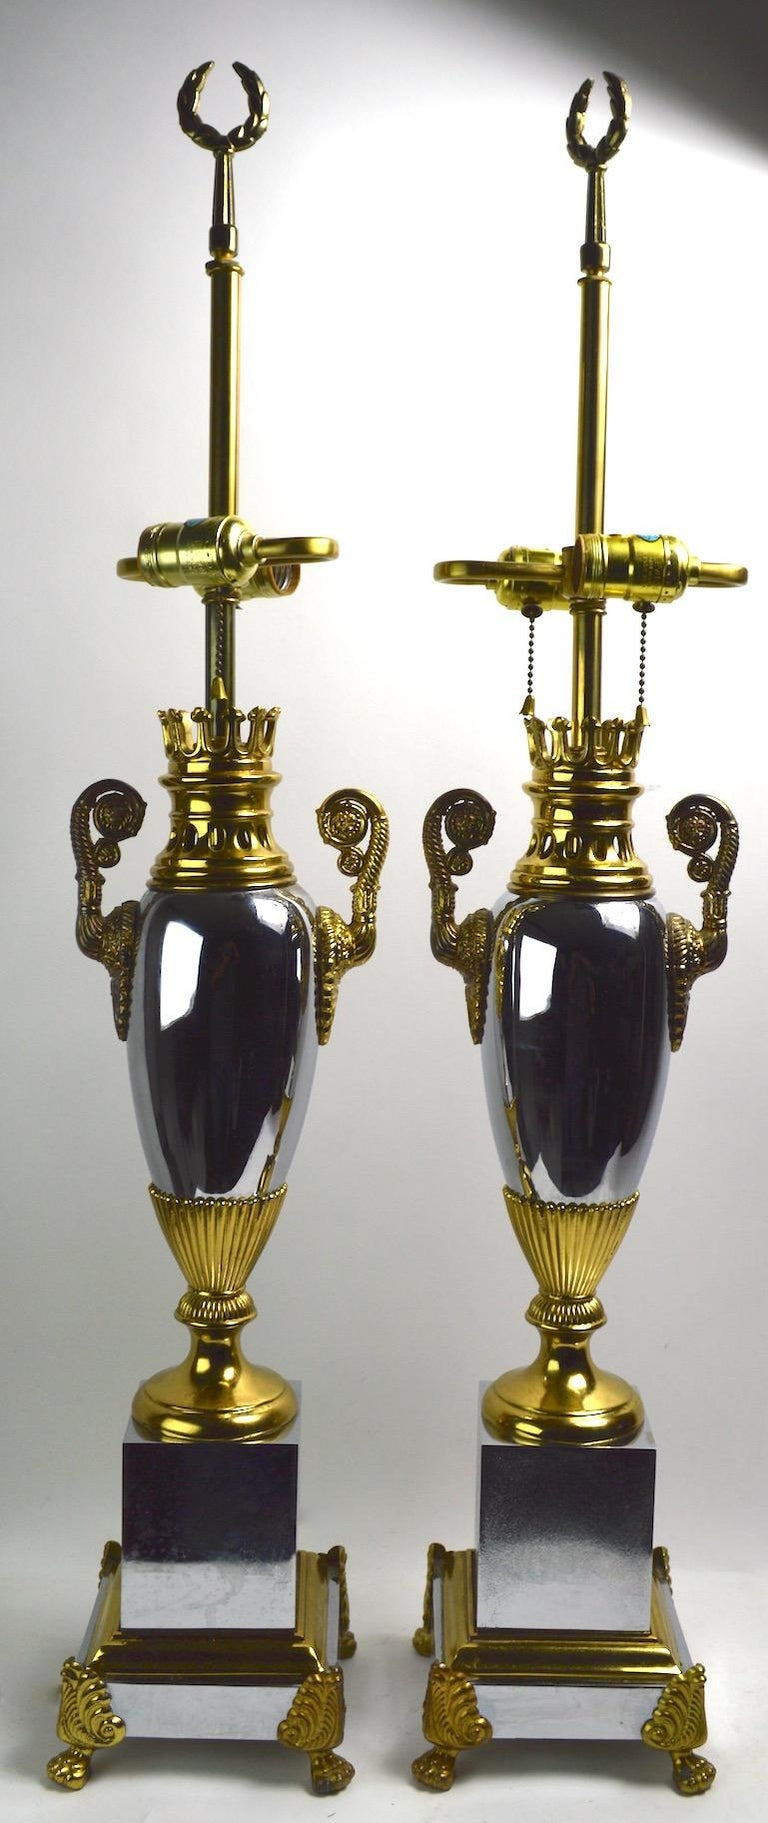 Pair of Hollywood Regency Lamps by Tyndale For Sale 10